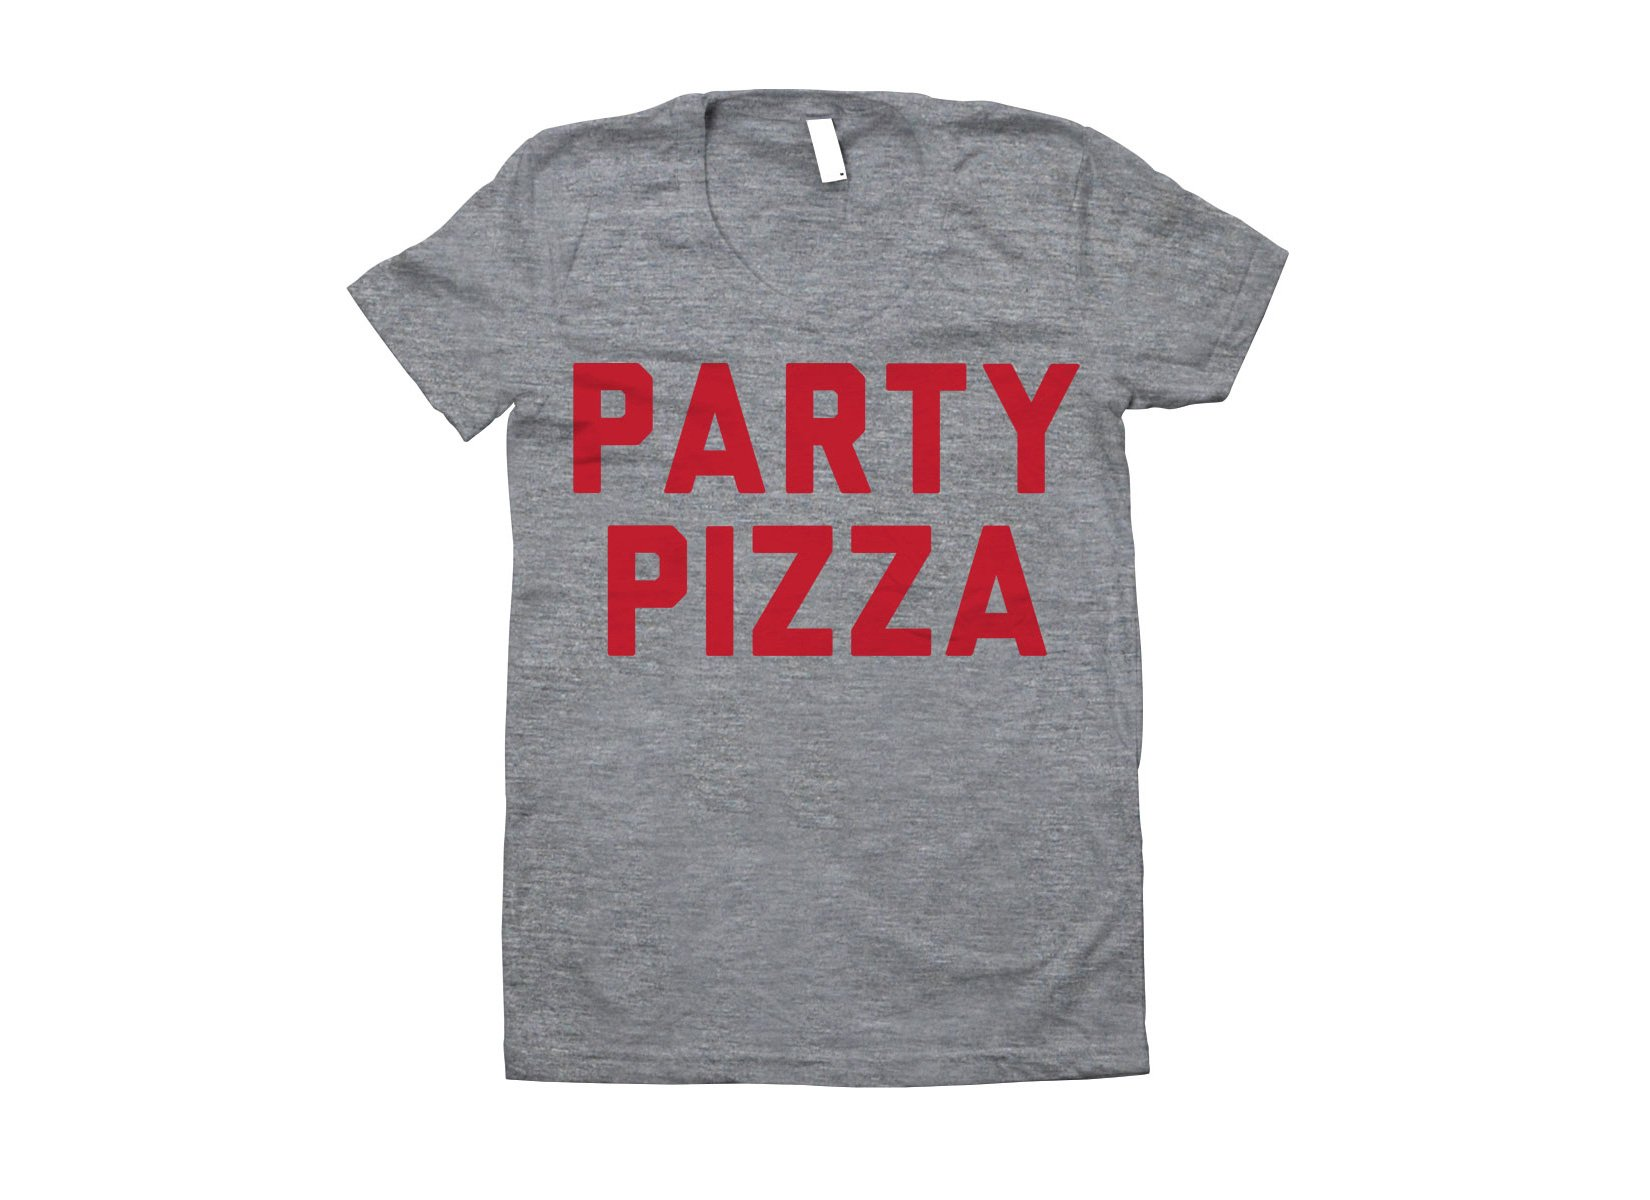 Party Pizza on Juniors T-Shirt